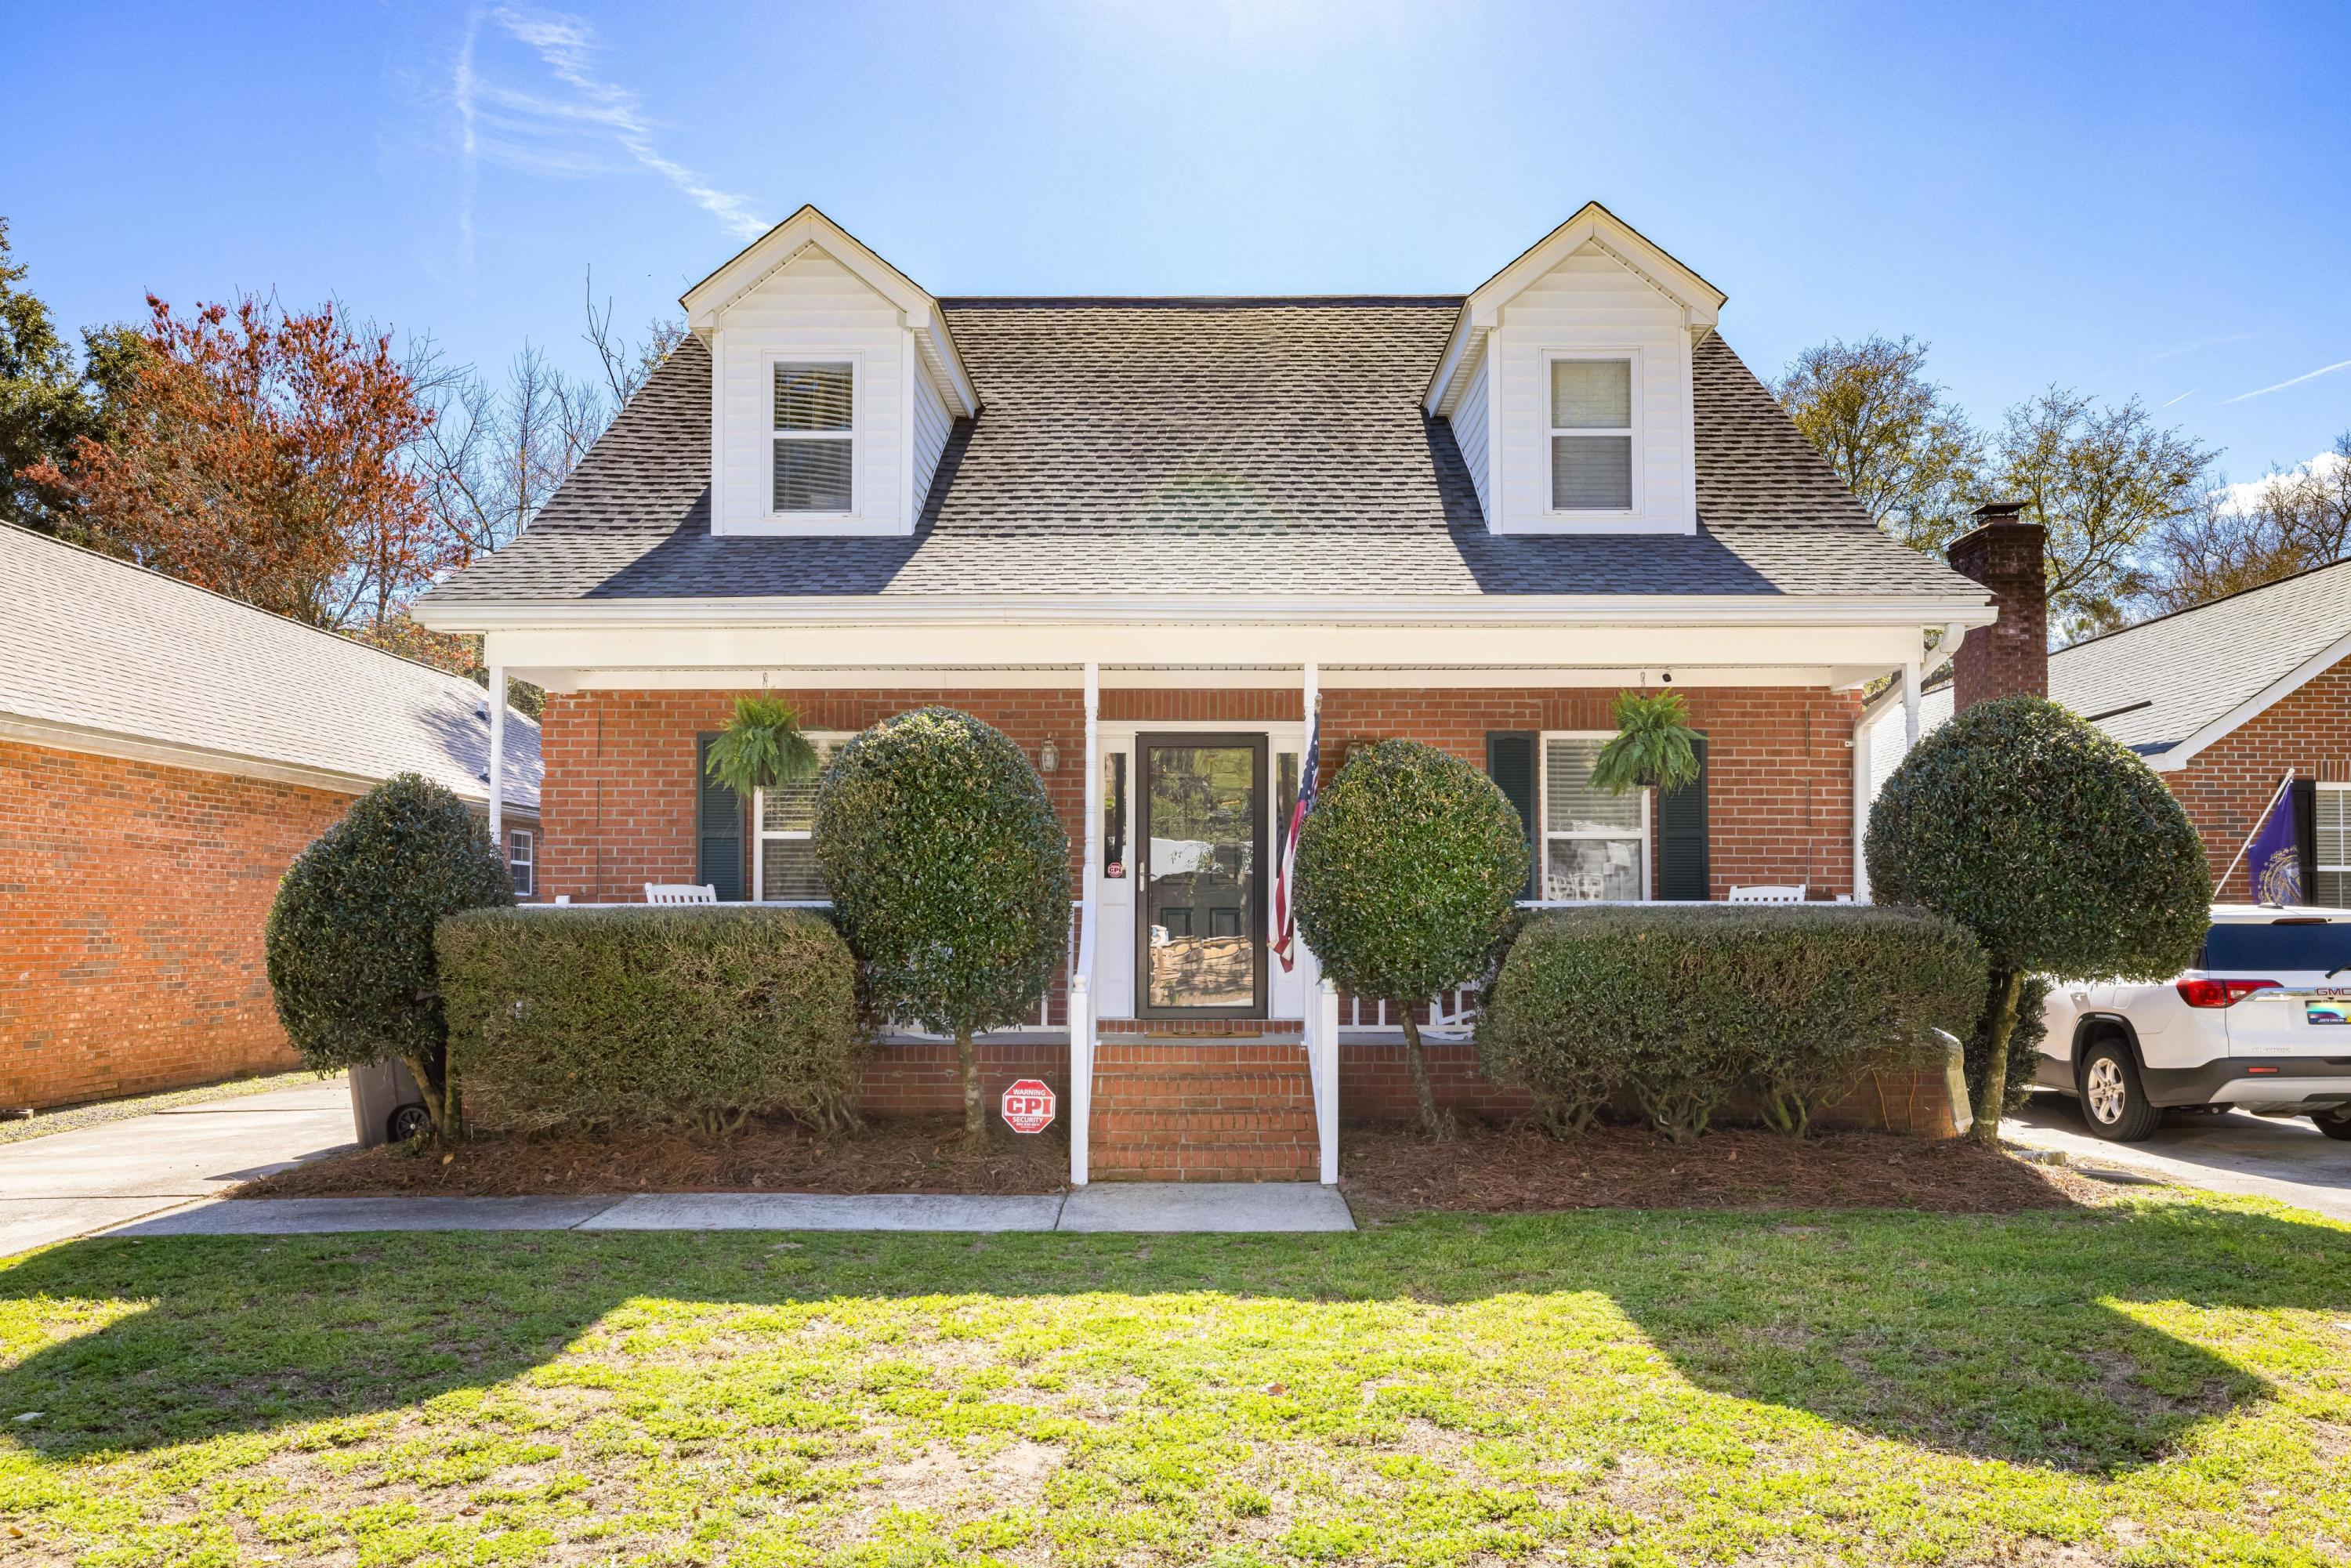 Old Georgetown Homes For Sale - 1117 Lazy, Mount Pleasant, SC - 11